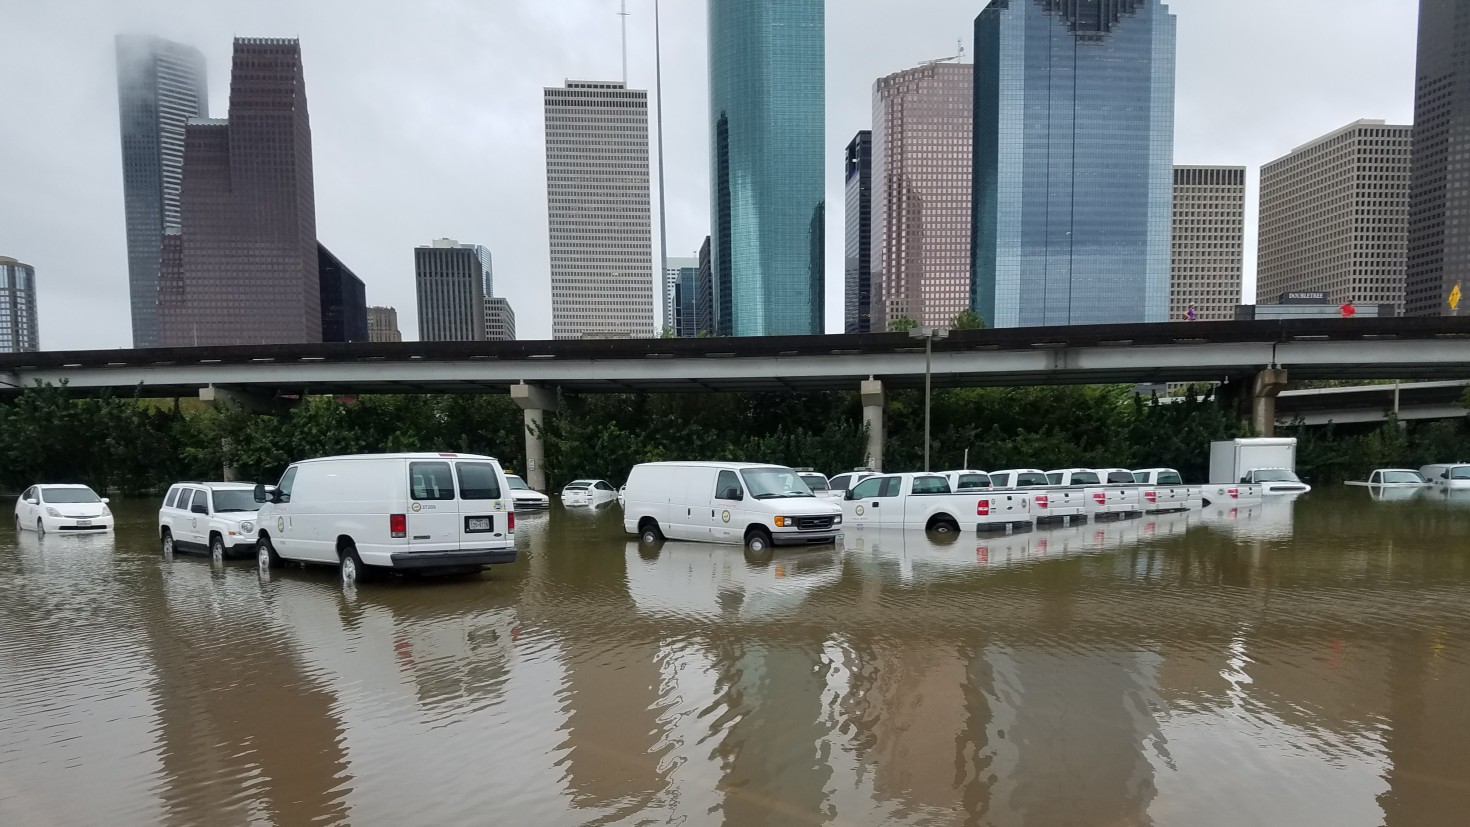 hurricane Harvey inundated big parts of houston but also caused economic losses elsewhere in the US and the world. Photo by Tom Fitzpatrick, FUGRO, via WMO on flickr